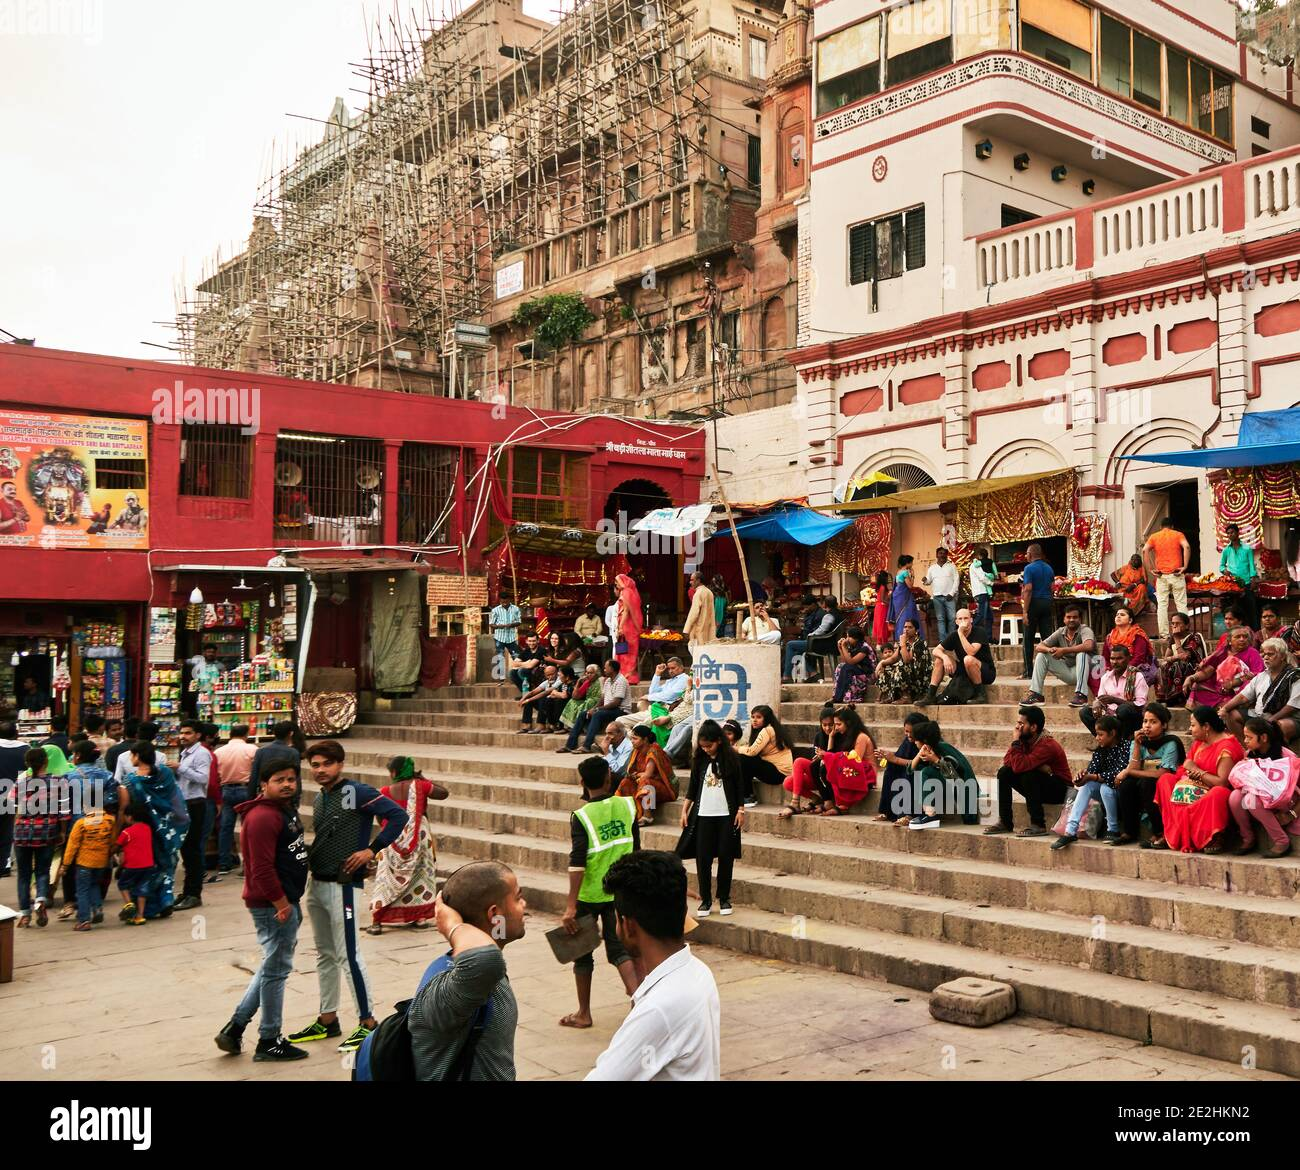 Varanasi (ex-Bénares), Uttar Pradesh, India . In the buildings under restoration surrounded by bamboo scaffolding live colonies of monkeys that partic Stock Photo